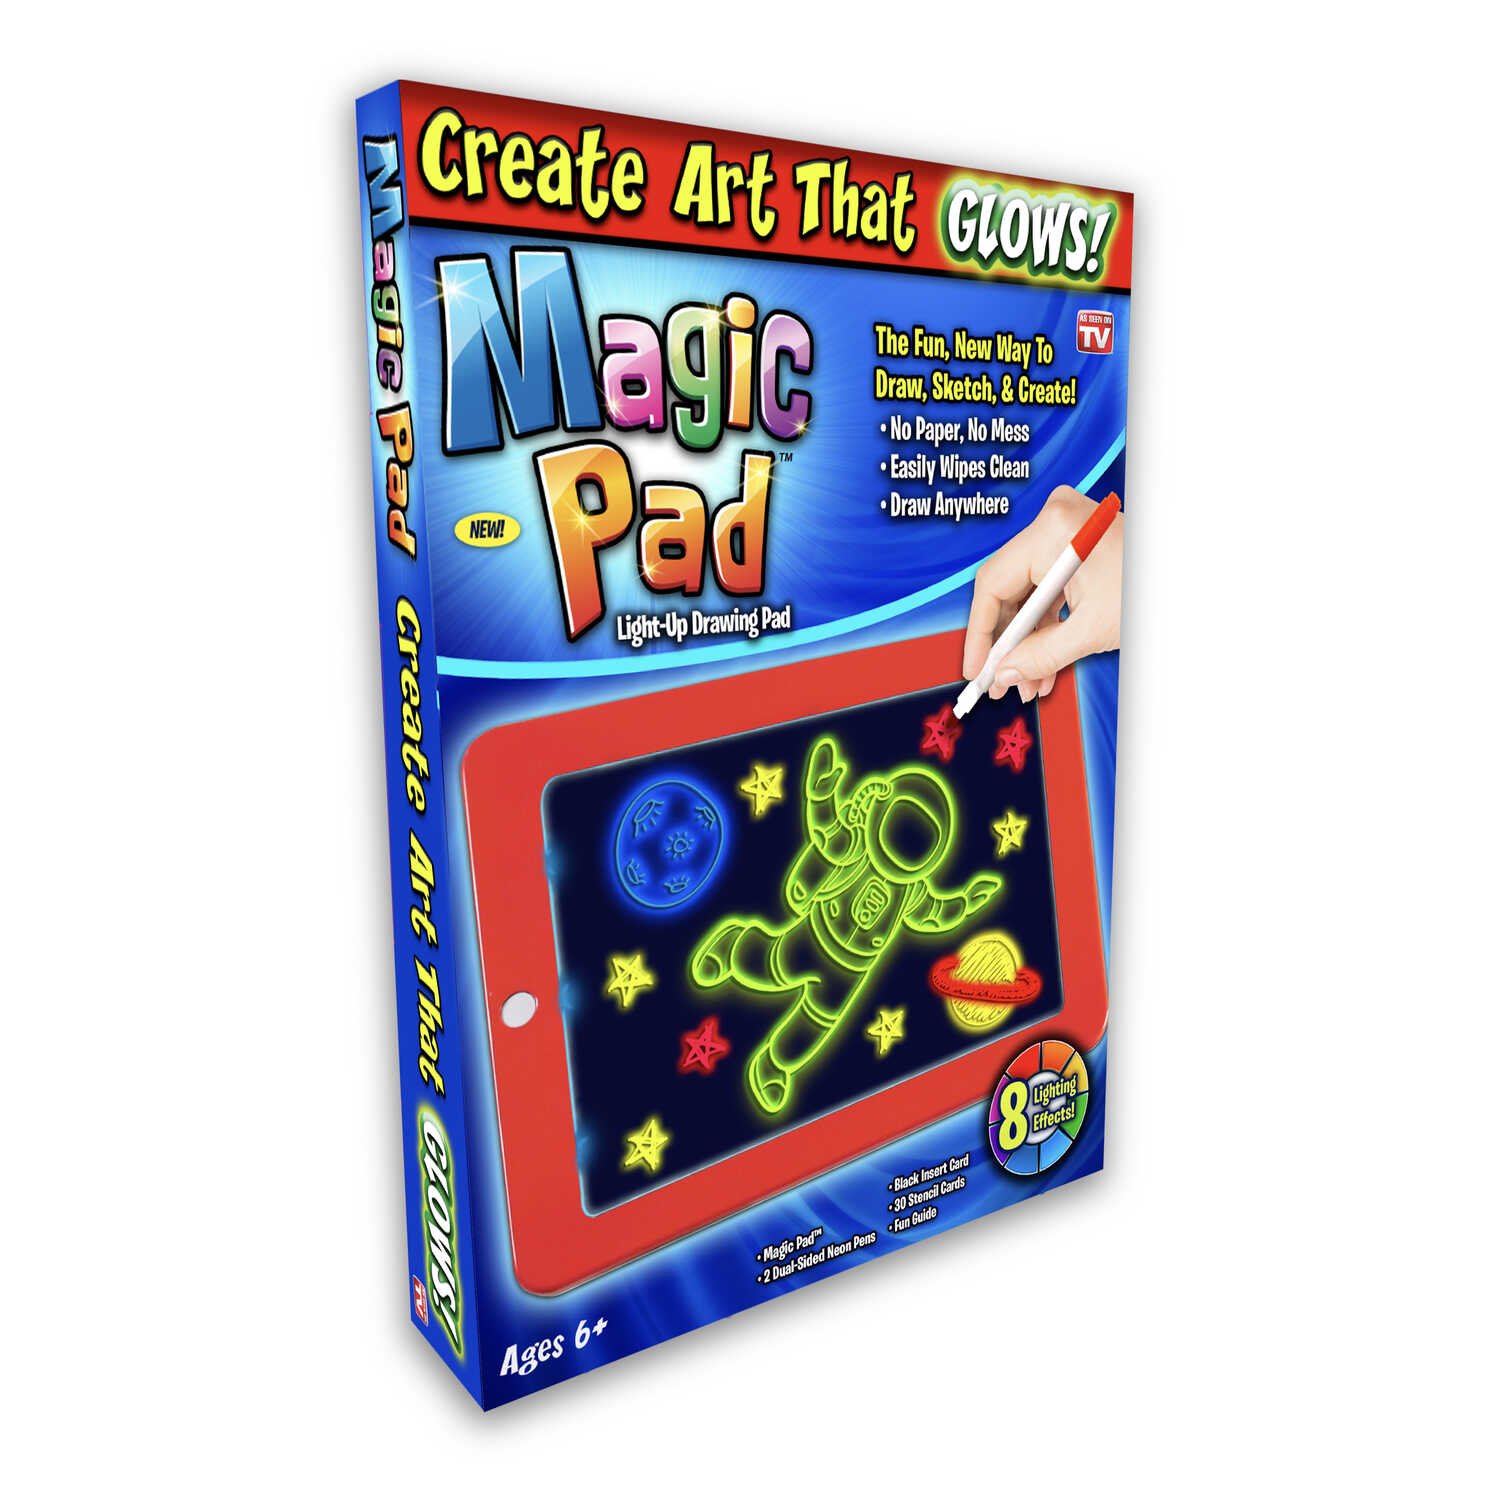 Magic Pad  As Seen On TV  Light-Up Drawing Pad  Plastic